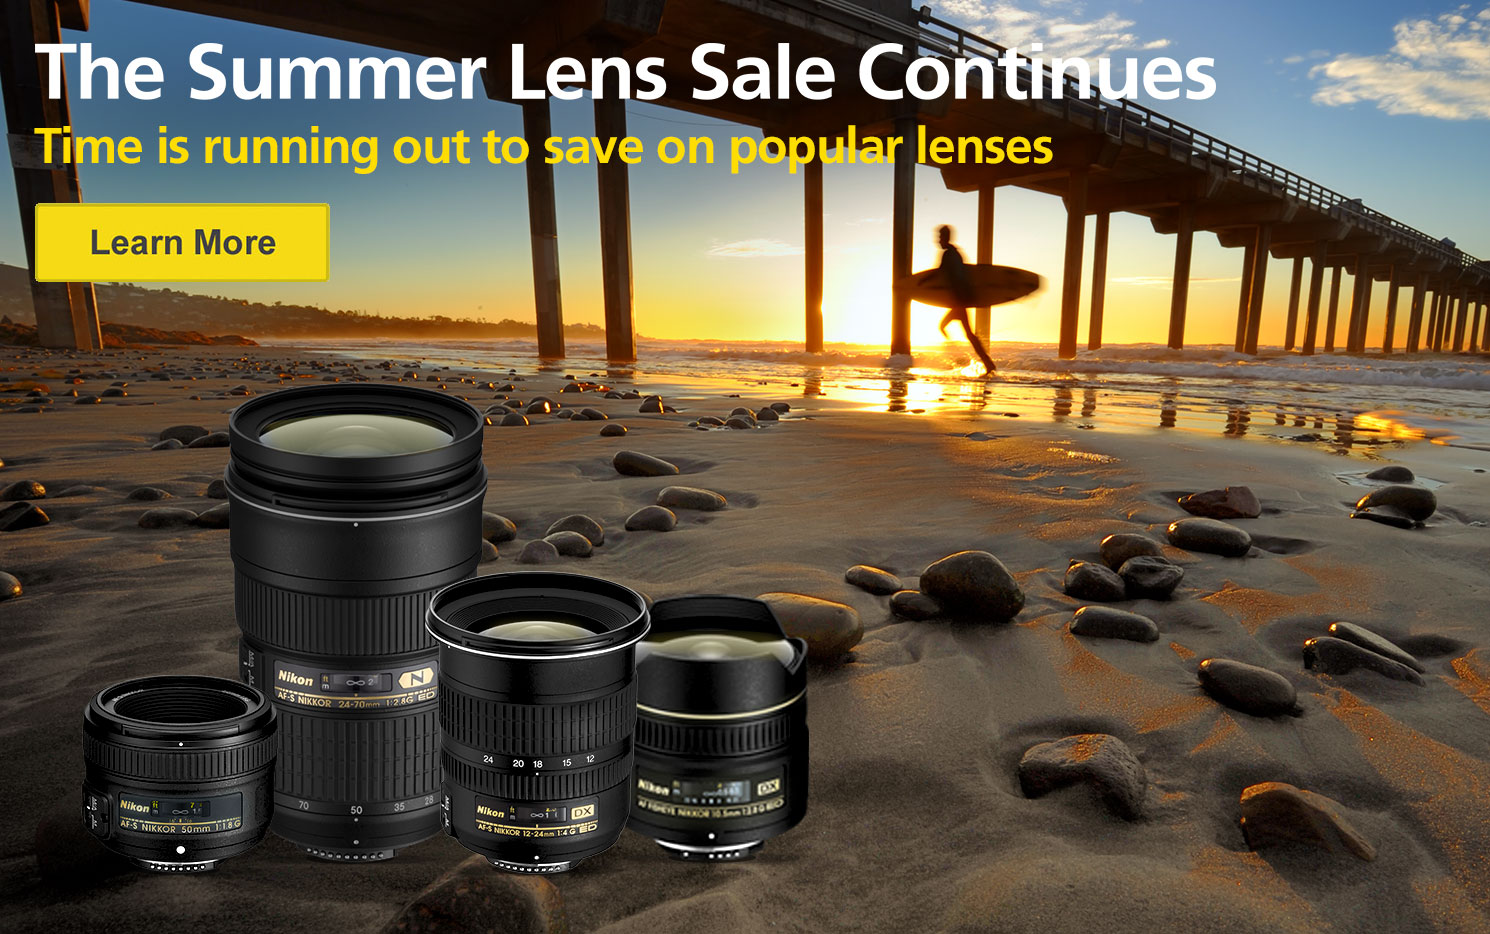 The Summer Lens Sale Continues